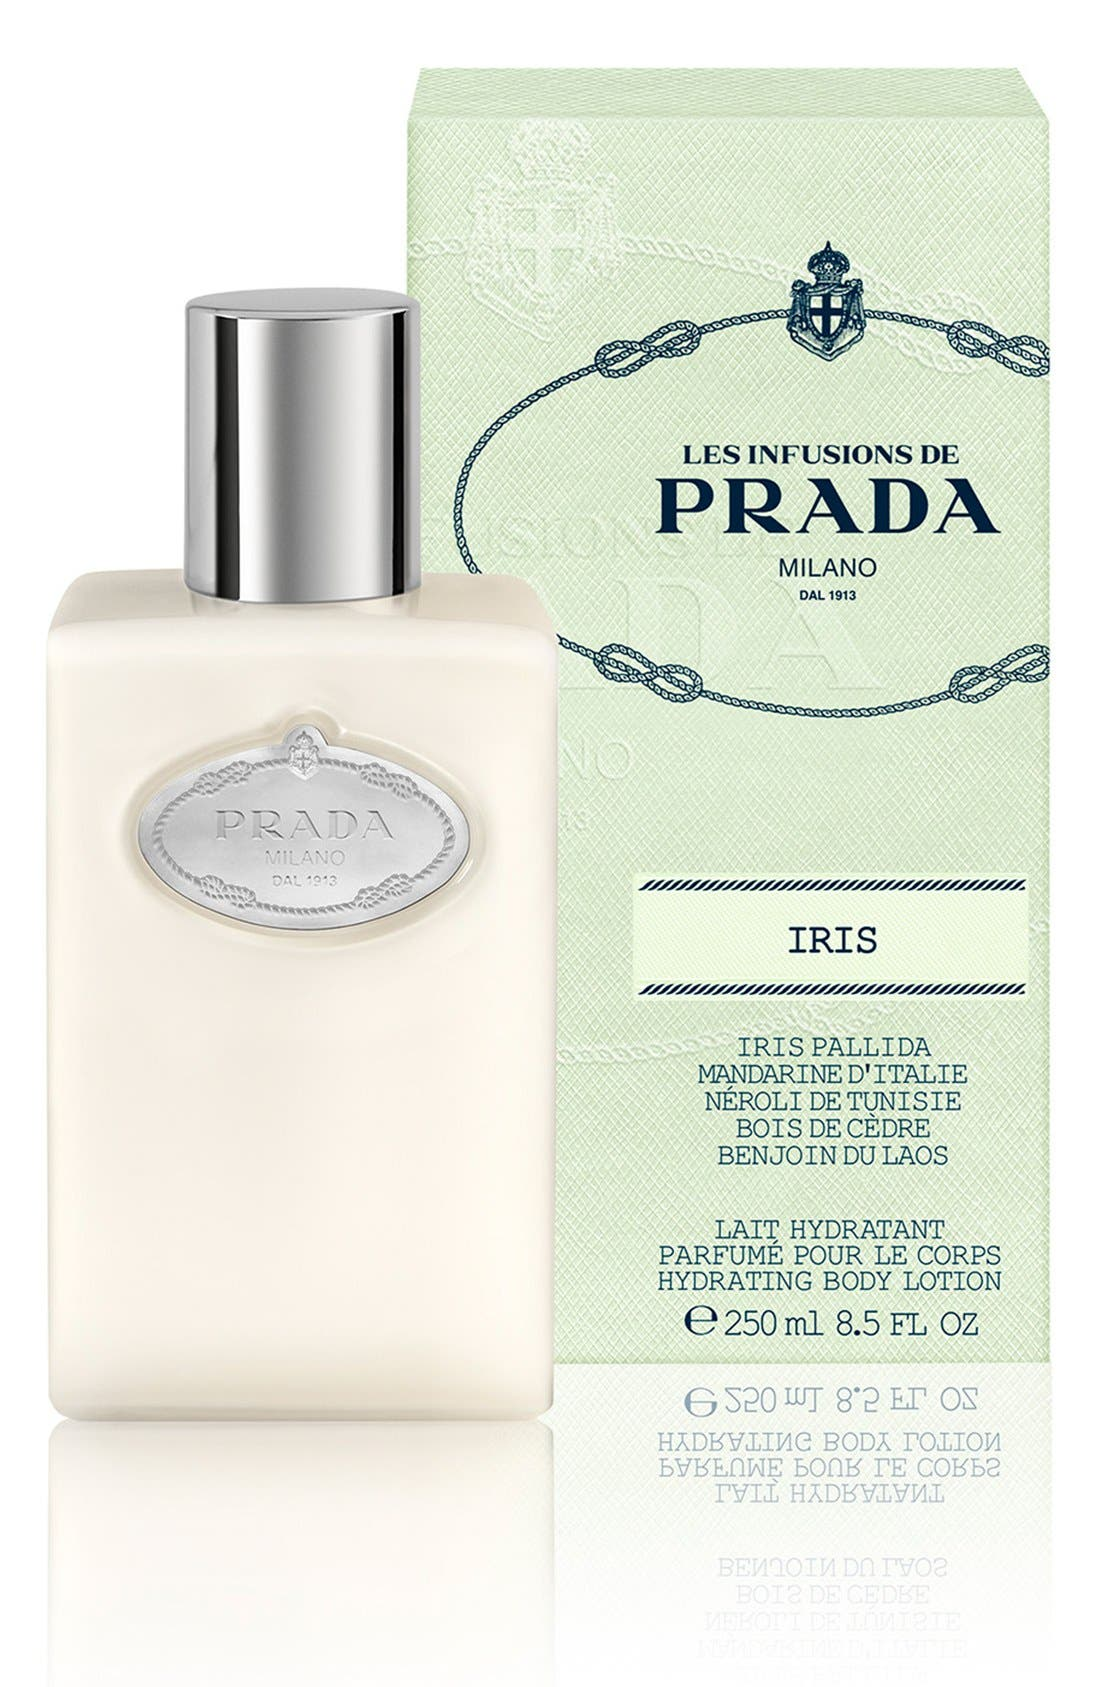 Prada 'Les Infusions d'Iris' Body Lotion